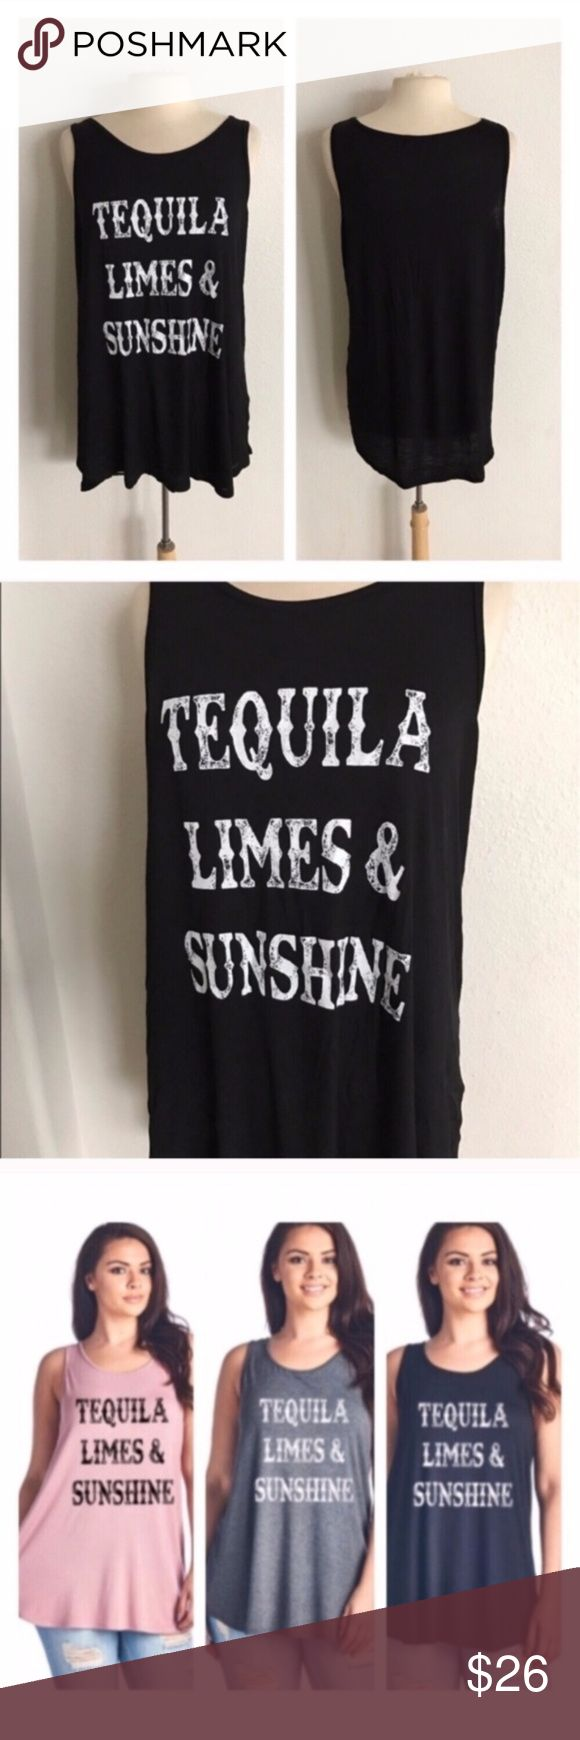 """3 LEFT! (Plus) Tequila tank top Great quality and super stretchy! 95% rayon/ 5% spandex. Semi thick. Runs true to size- I'm a 2x/16/18 and the 1x actually fit really well. If you want a form fitted look order one size down- flowy look order one size up. I'd say 1x = 14/16, 2x = 16/18, 3x = 18/20 1x: L 30"""" B 40""""  2x: L 31"""" B 42"""" 3x: L 32"""" B 44"""" ⭐️This item is brand new without tags 💲Price is firm unless bundled ✅Bundle offers Availability: 1x•3x • 2•1 Tops Tank Tops"""